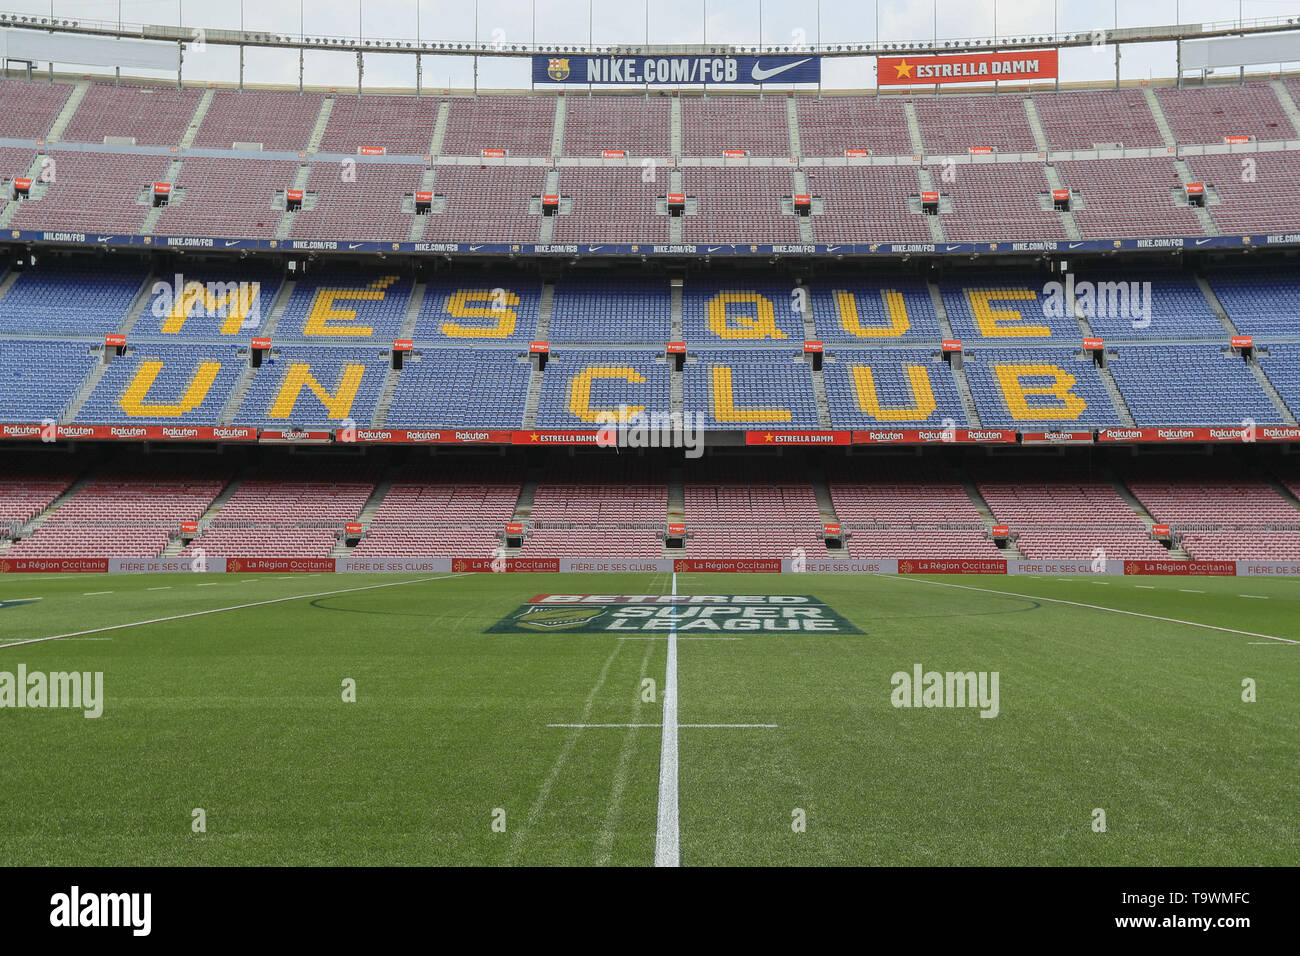 18th May 2019 , Camp Nou, Barcelona, Spain ;  Betfred Super League, Round 15, Catalans Dragons vs Wigan Warriors ; A general view of Camp Nou  Credit: Mark Cosgrove/News Images - Stock Image